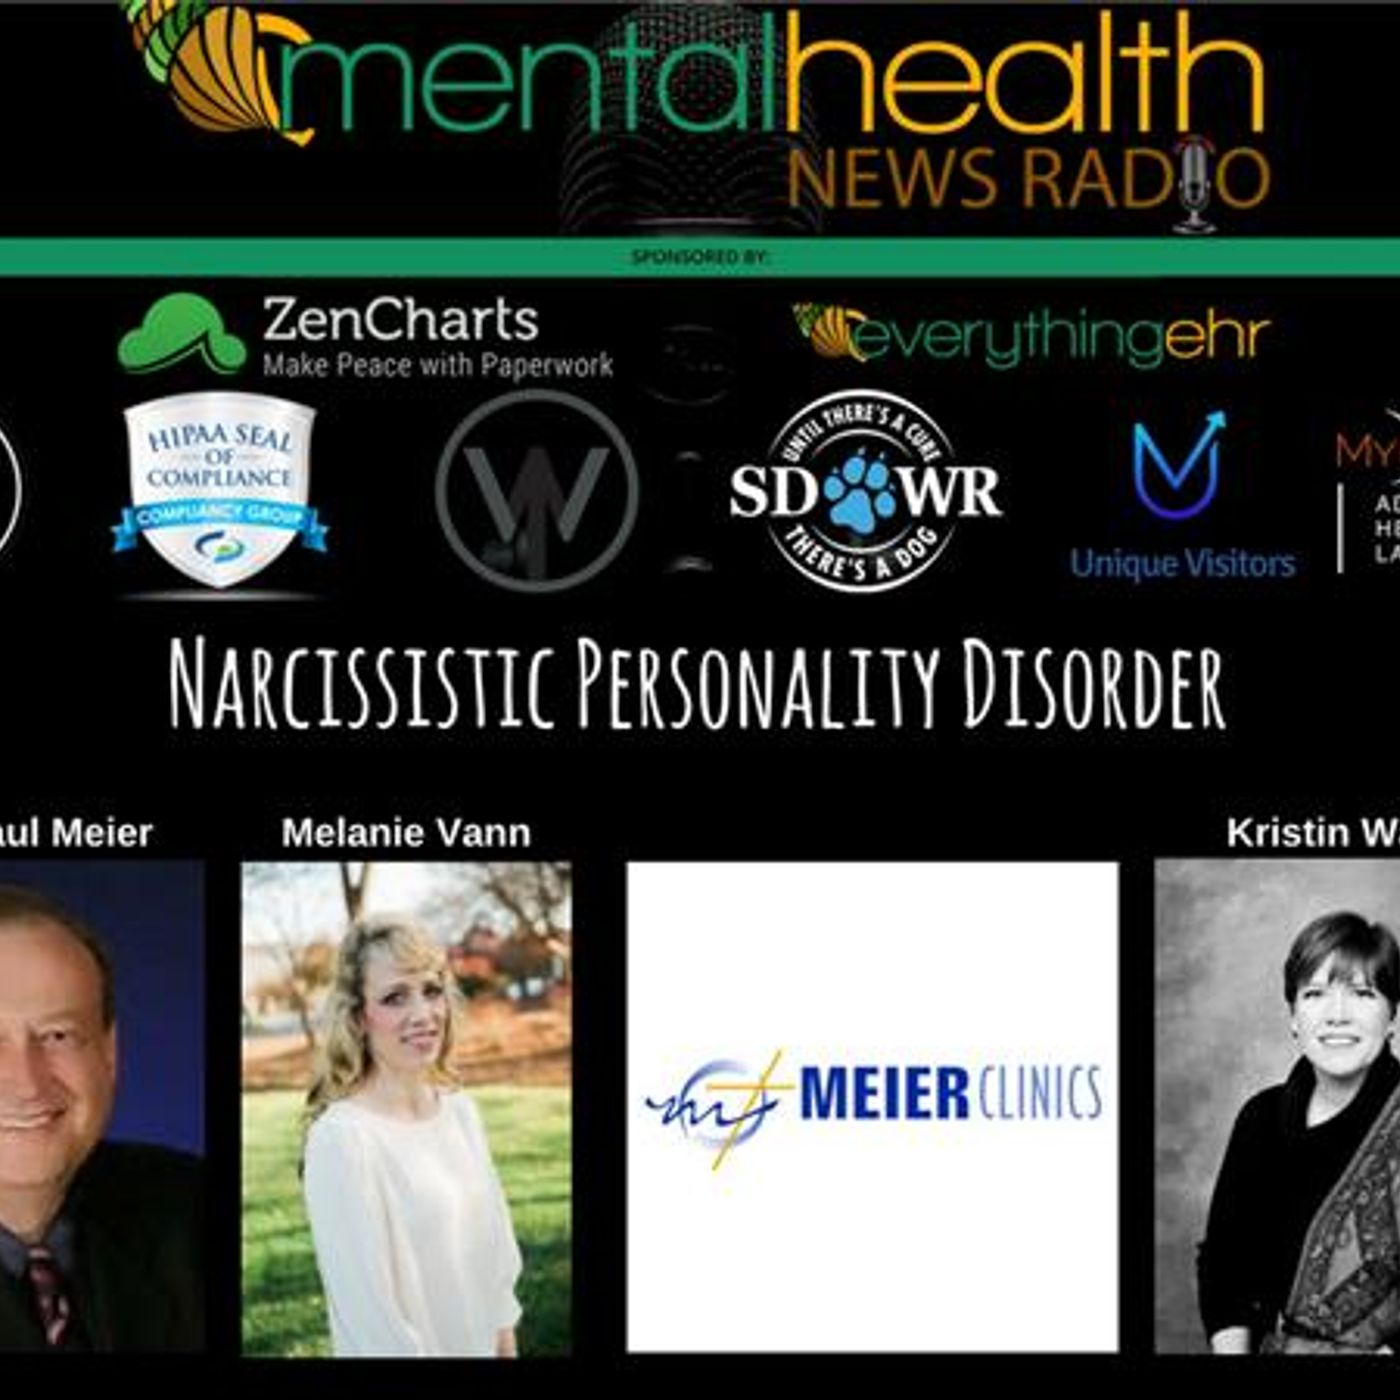 Mental Health News Radio - Dr. Paul Meier Round Table Discussions on Narcissistic Personality Disorder